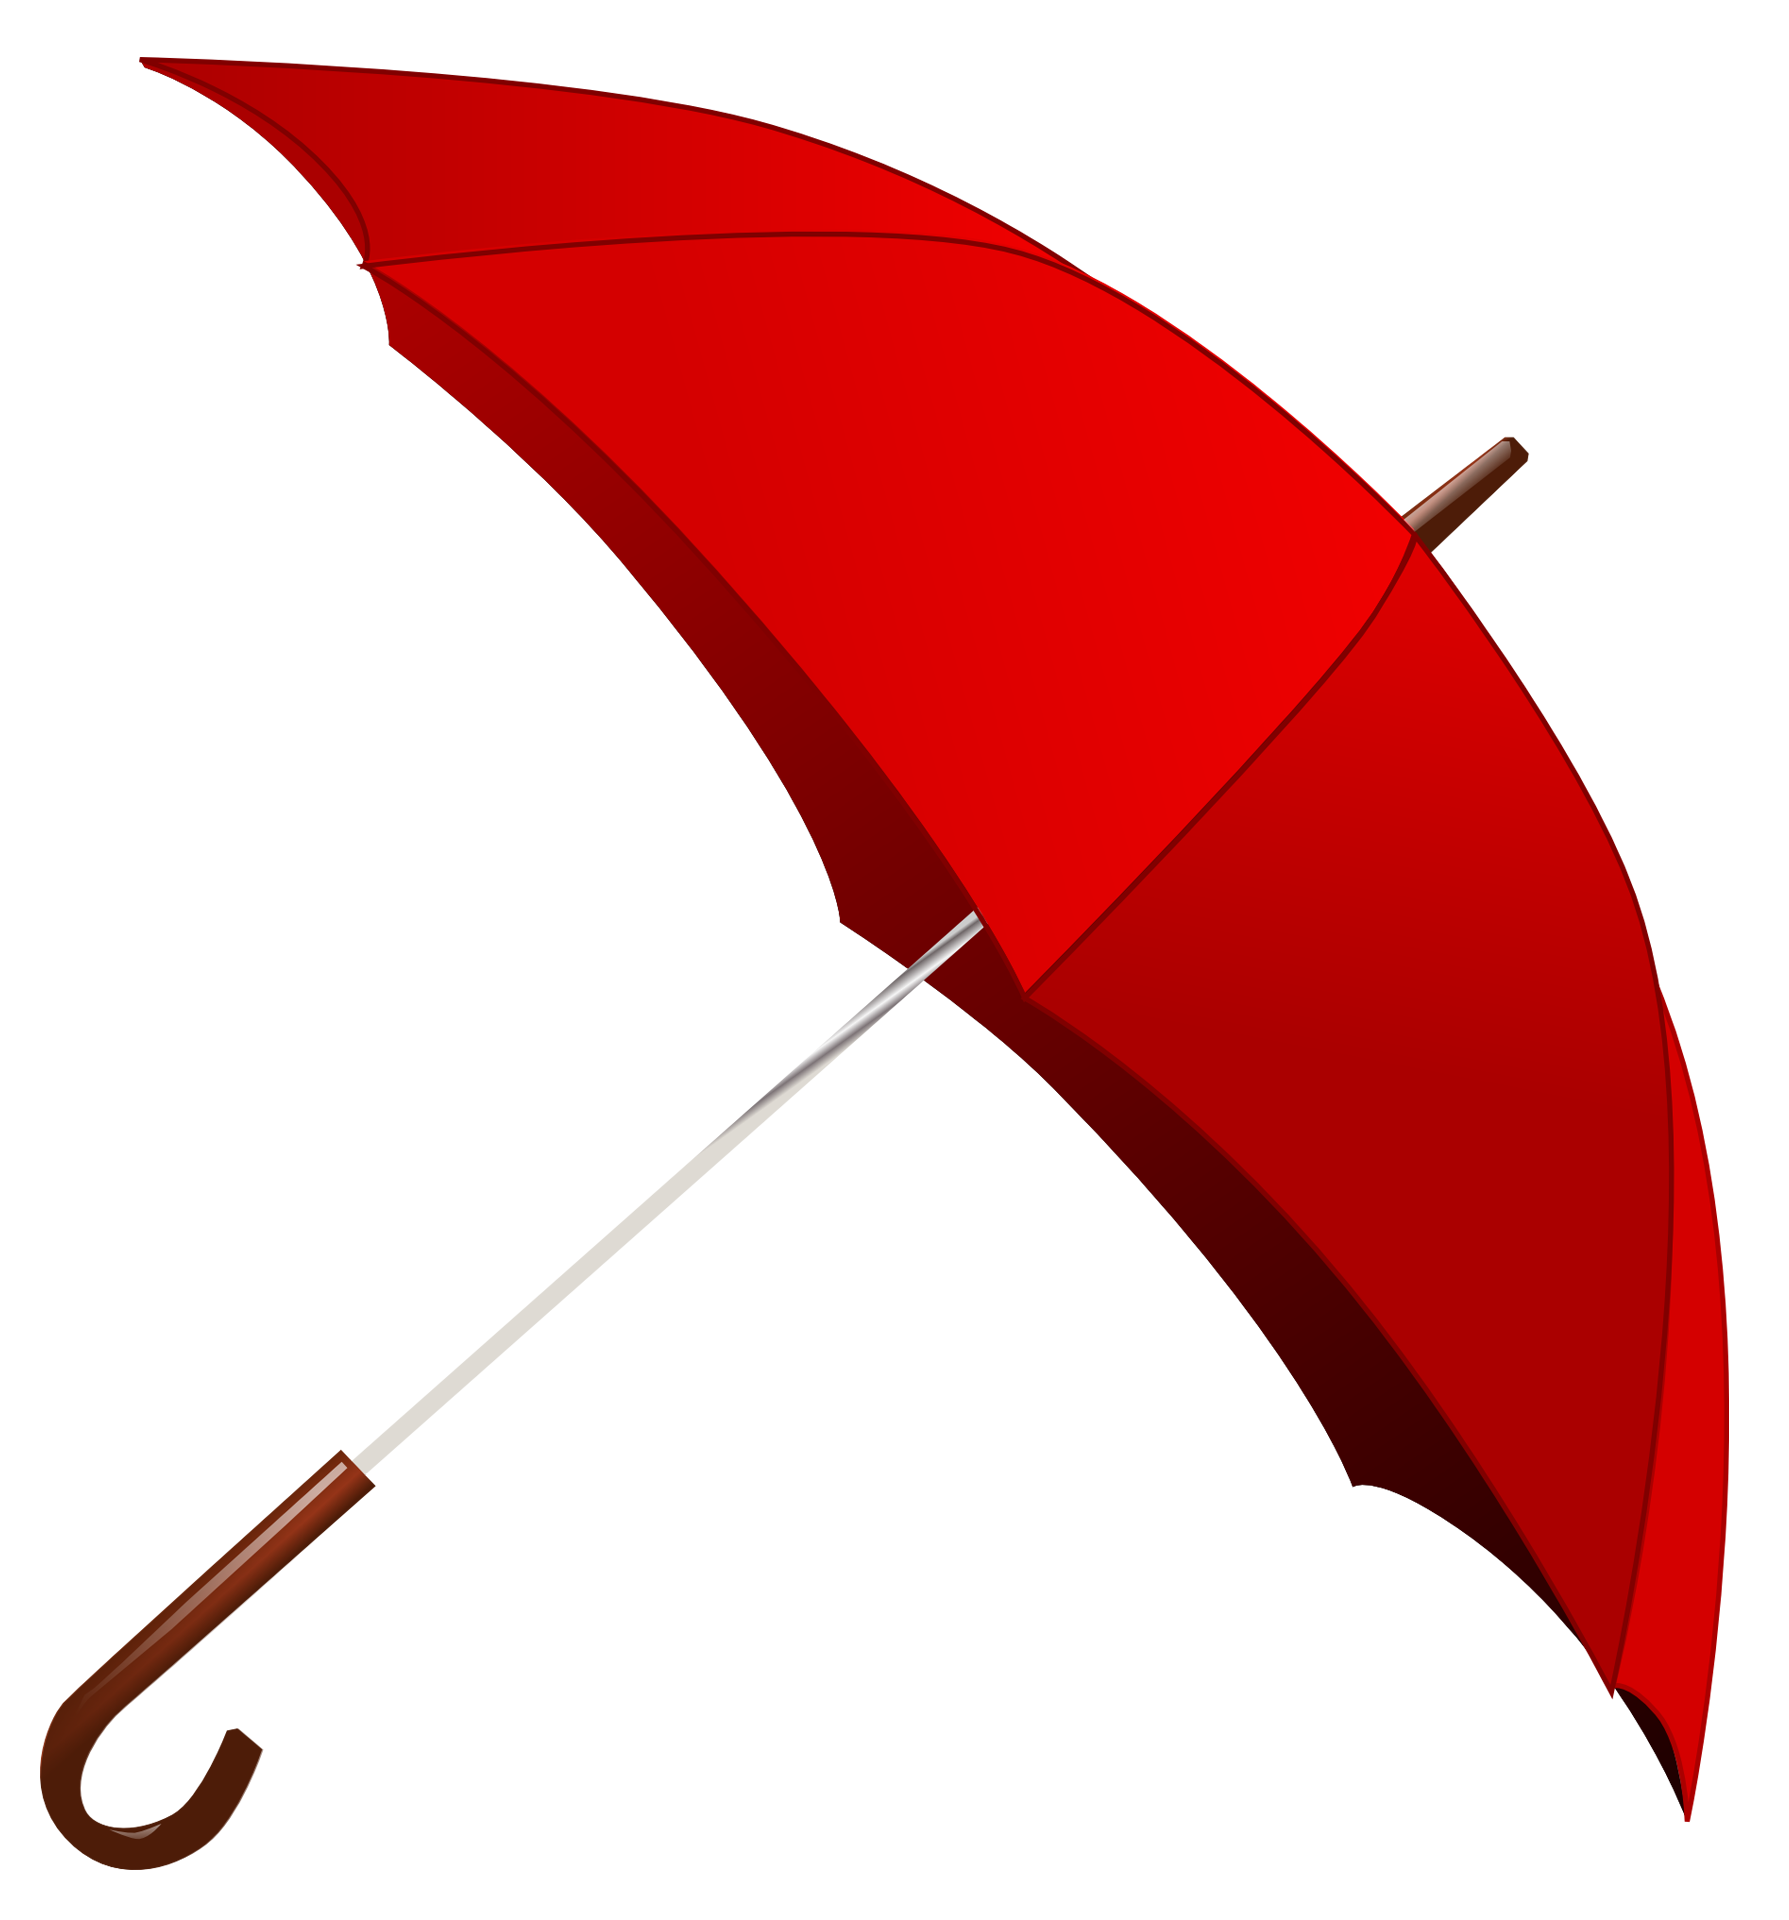 Red Umbrella PNG Image.